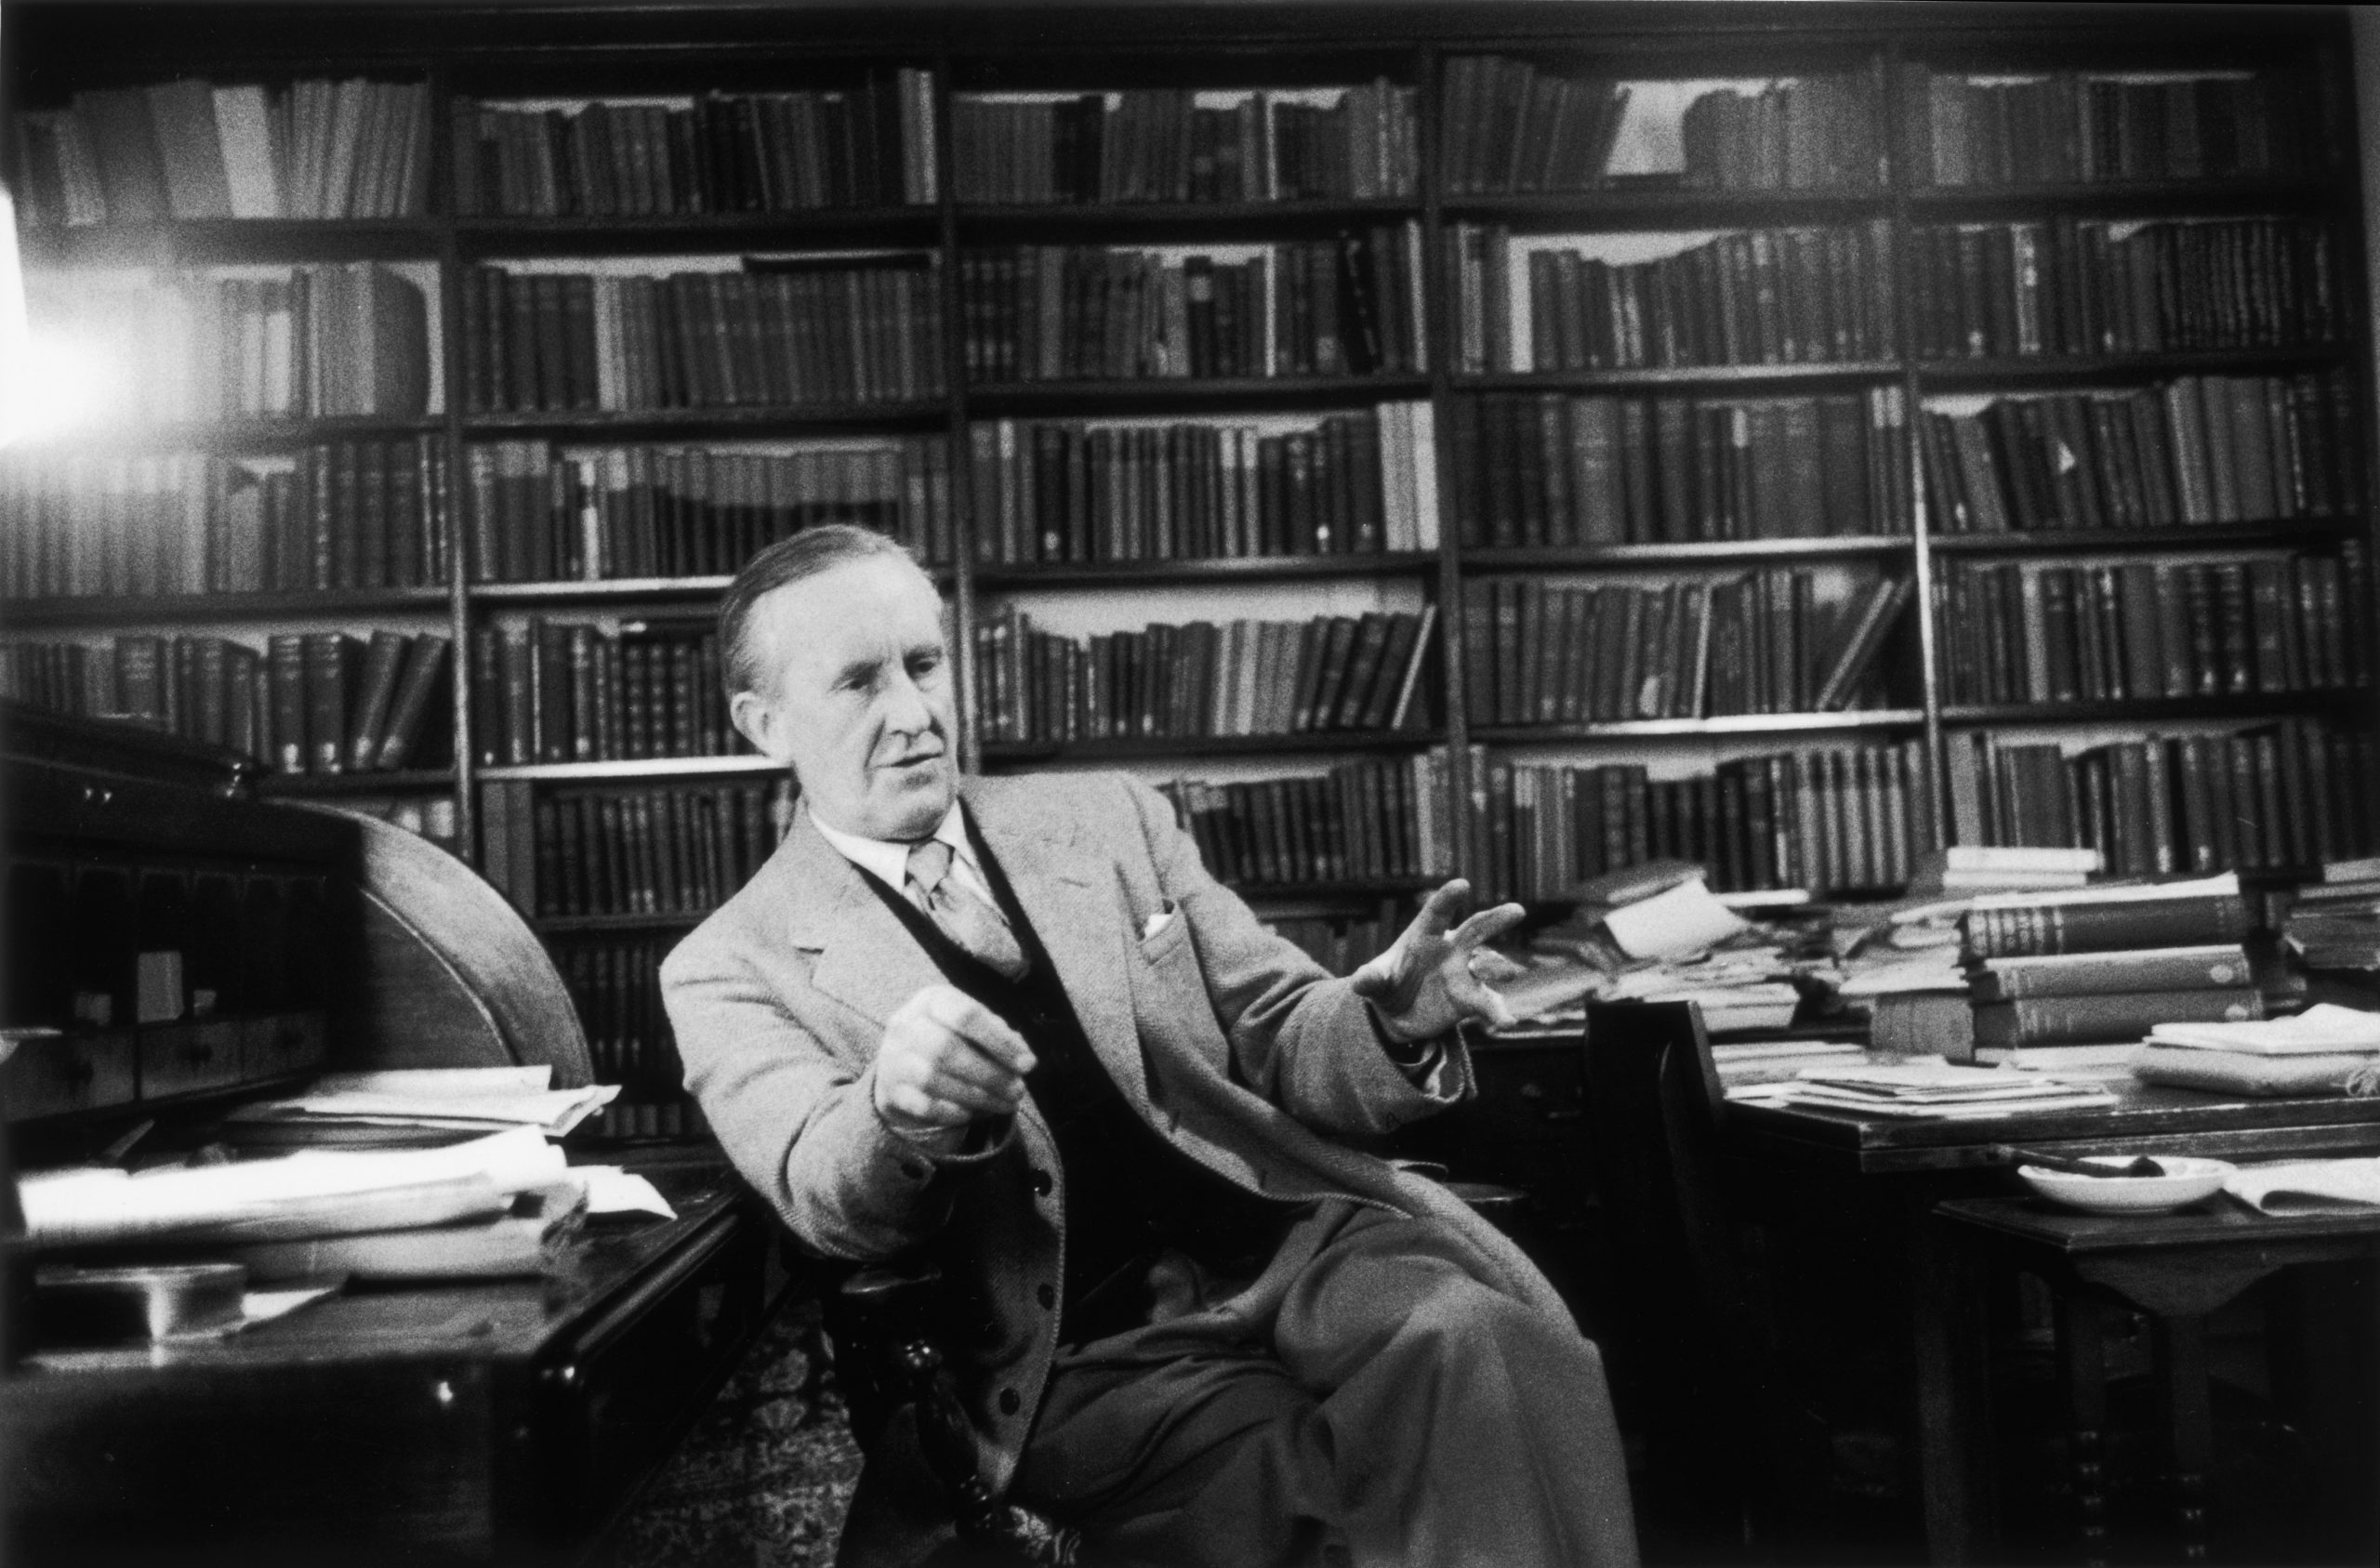 JRR Tolkien, the South African-born philologist and author of 'The Hobbit' and 'The Lord Of The Rings'. Photo by Haywood Magee/Getty Images